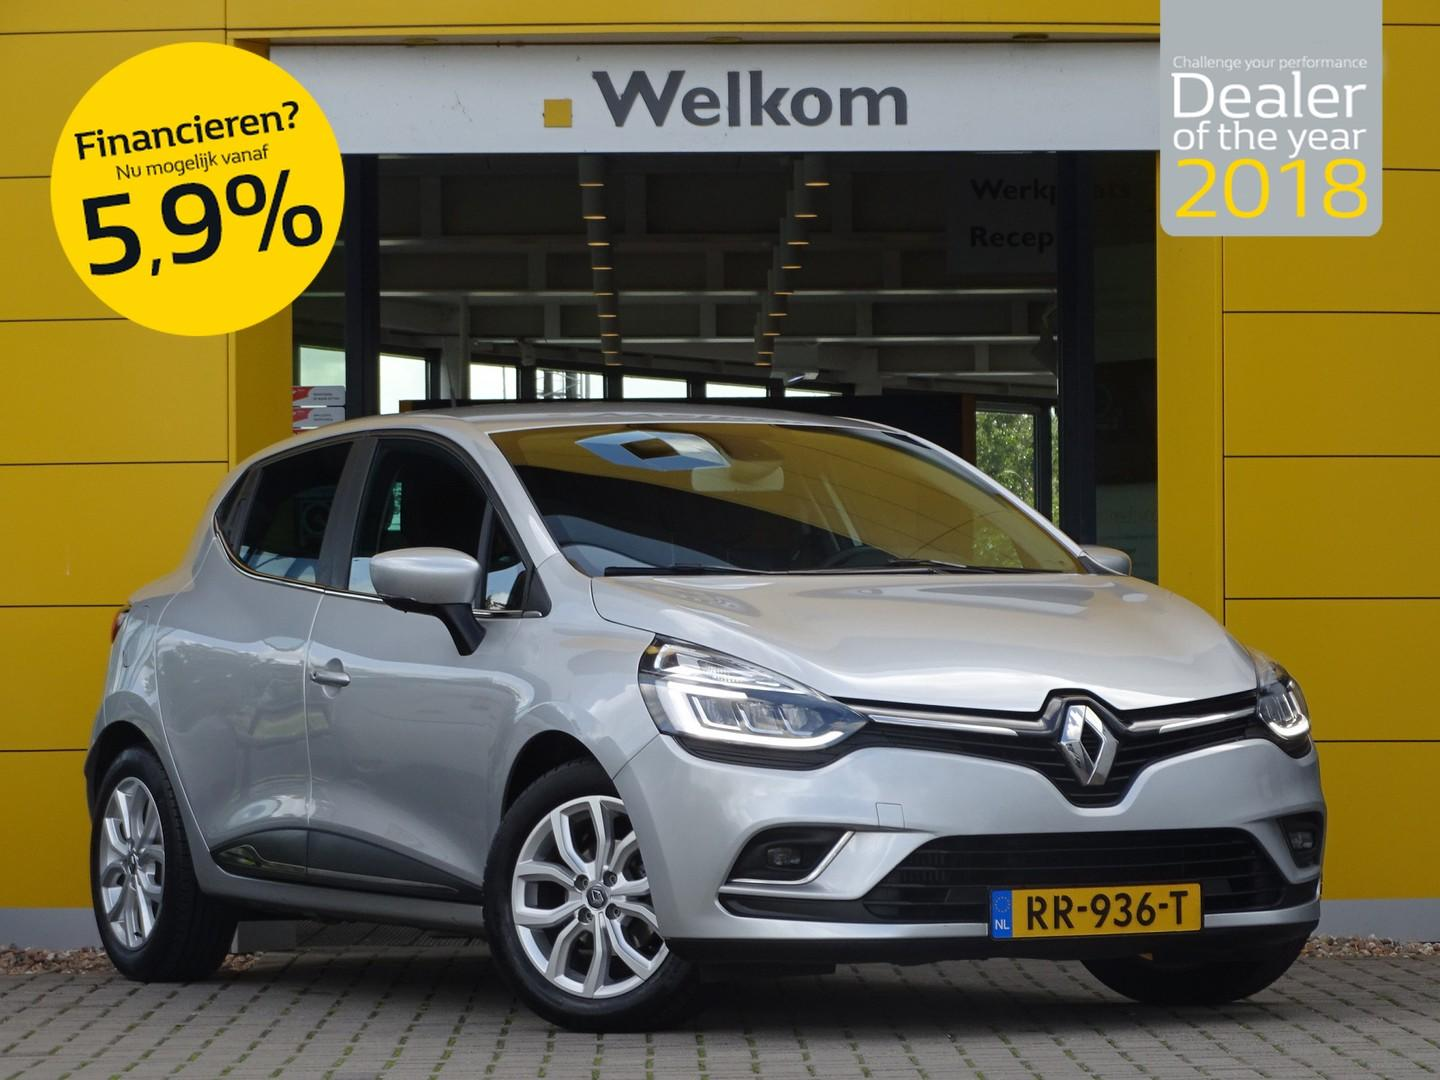 Renault Clio 0.9 tce intens